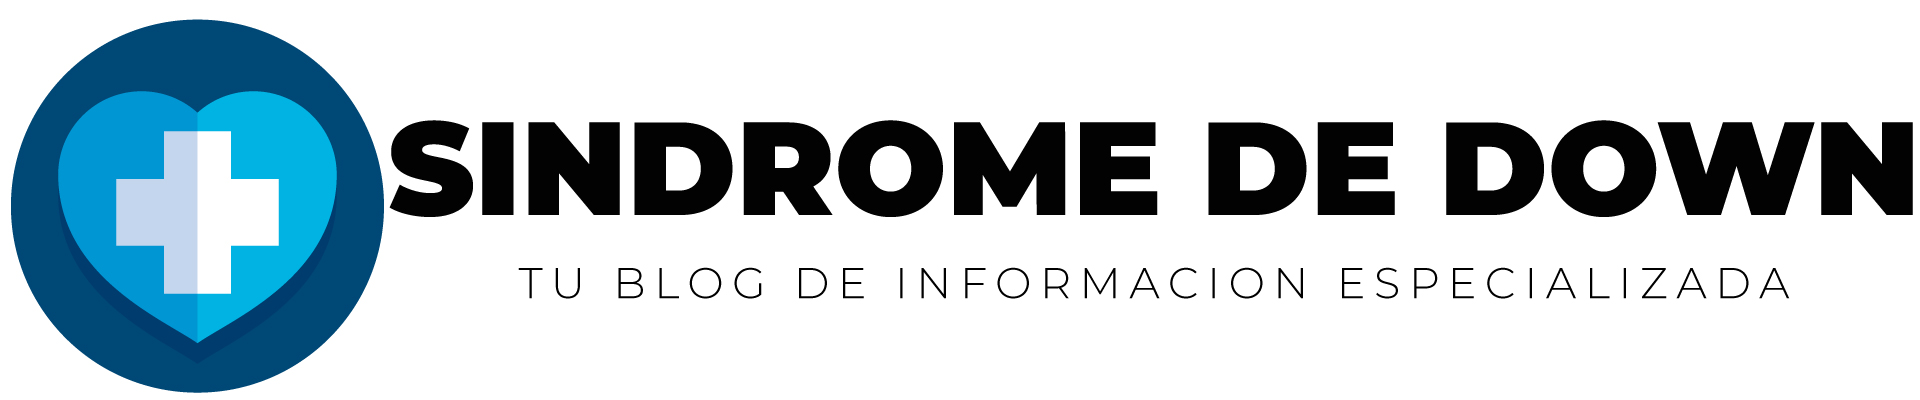 Blog especializado en Sindrome de Down